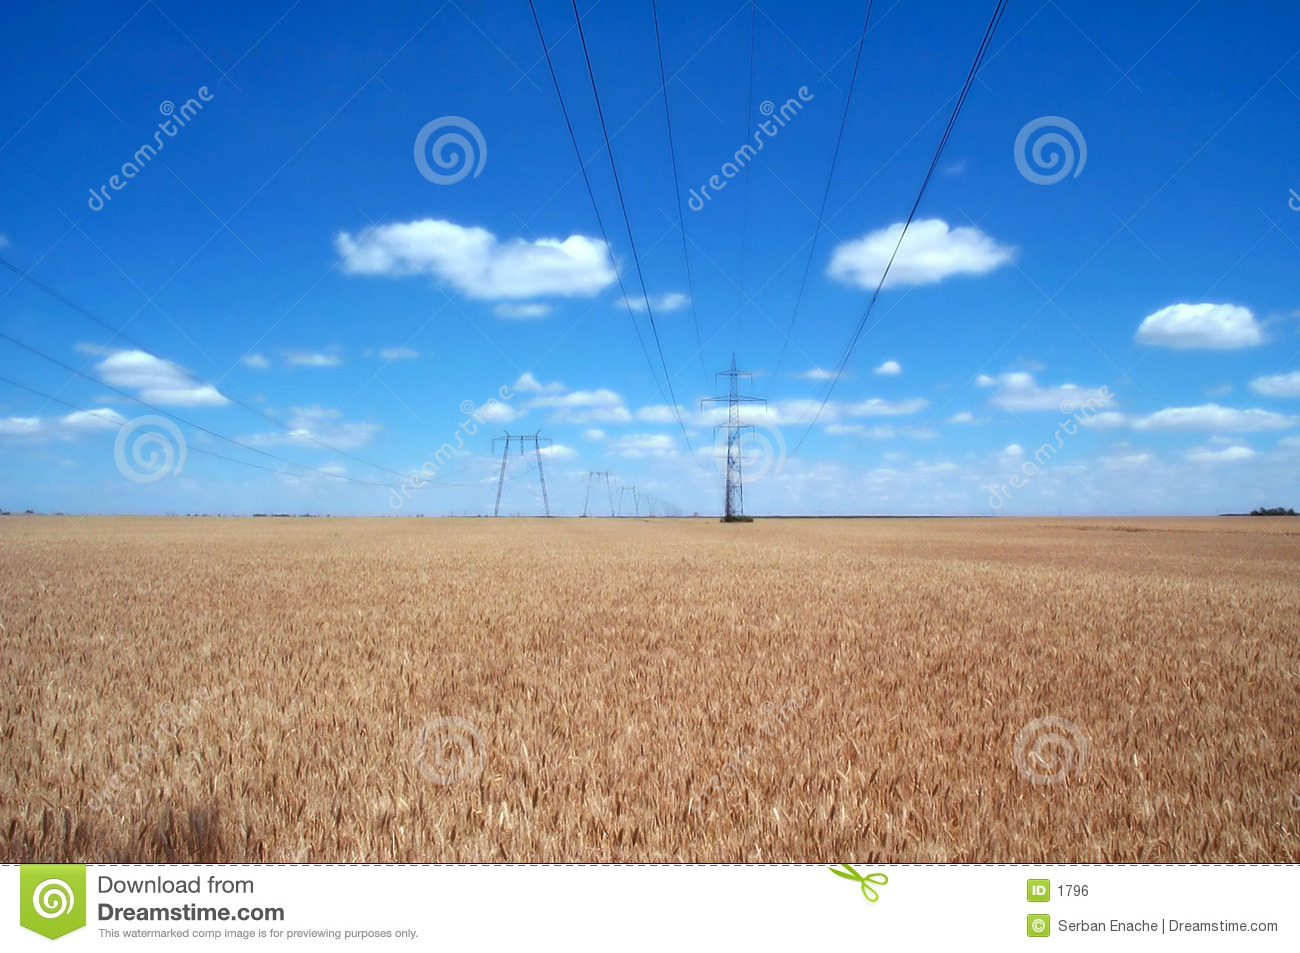 Wheat fields and power lines